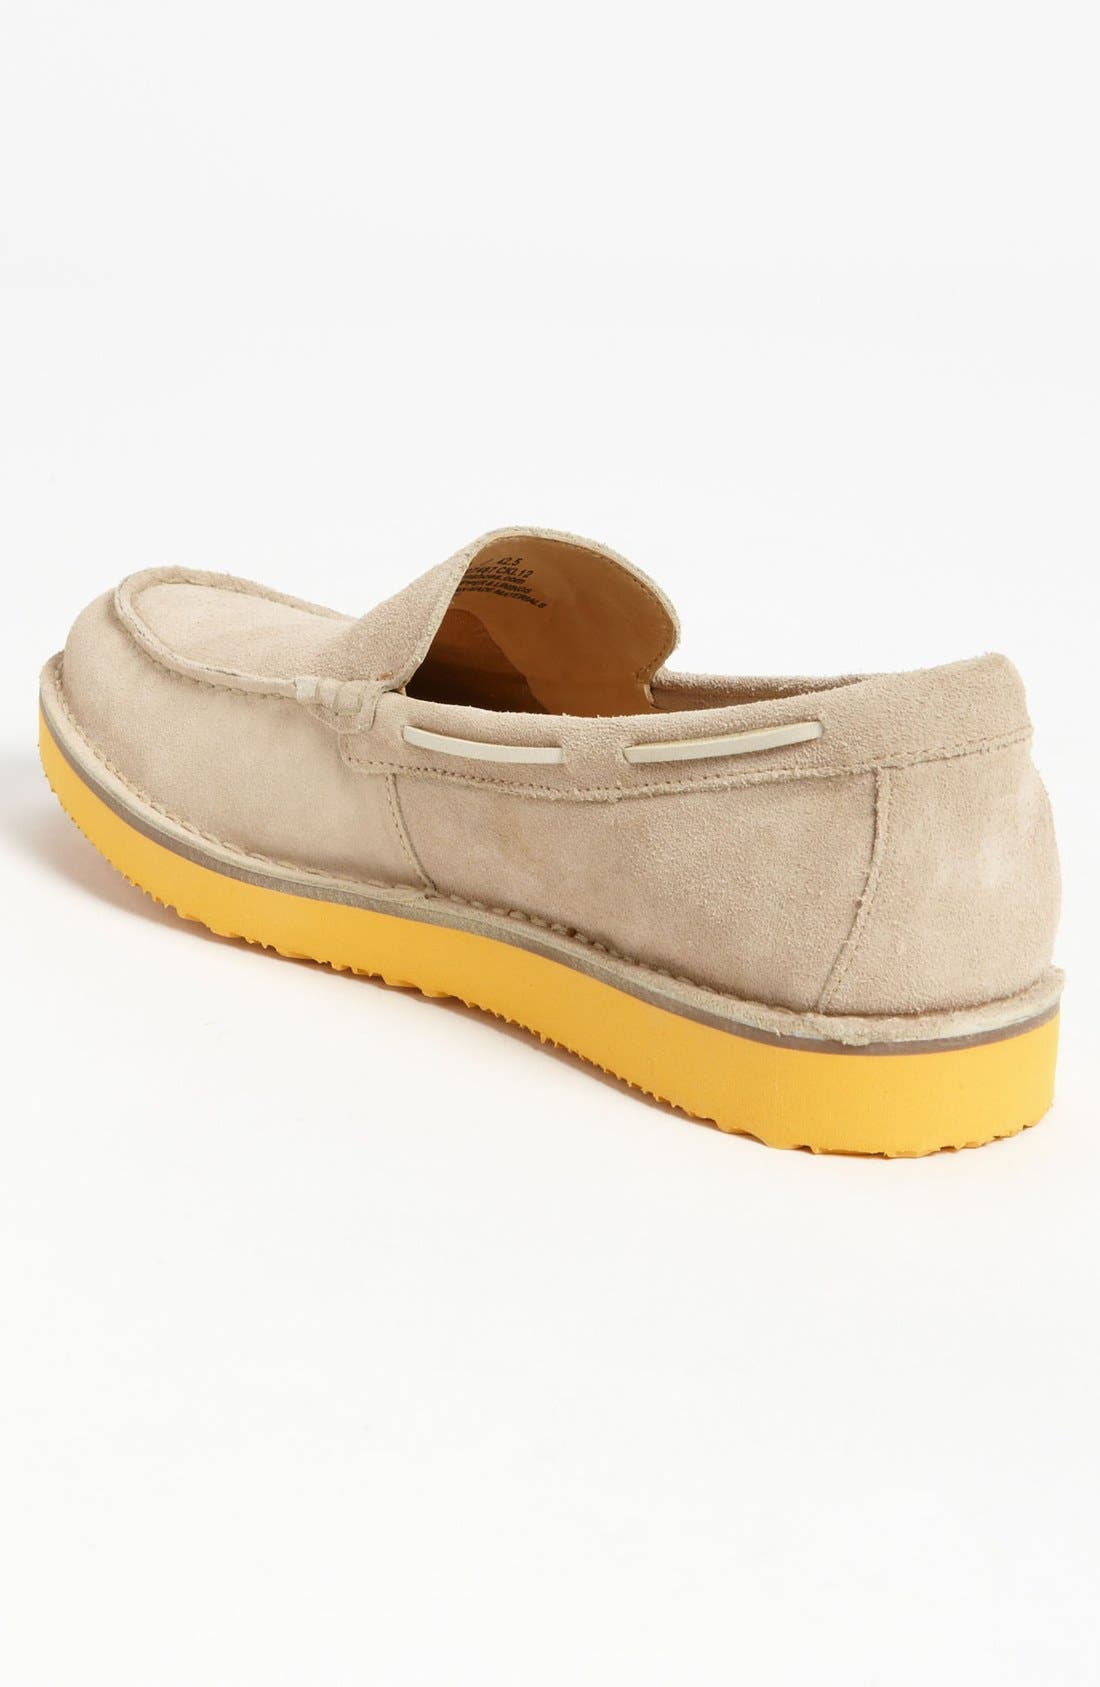 Alternate Image 2  - Børn 'Zander' Venetian Loafer (Men)